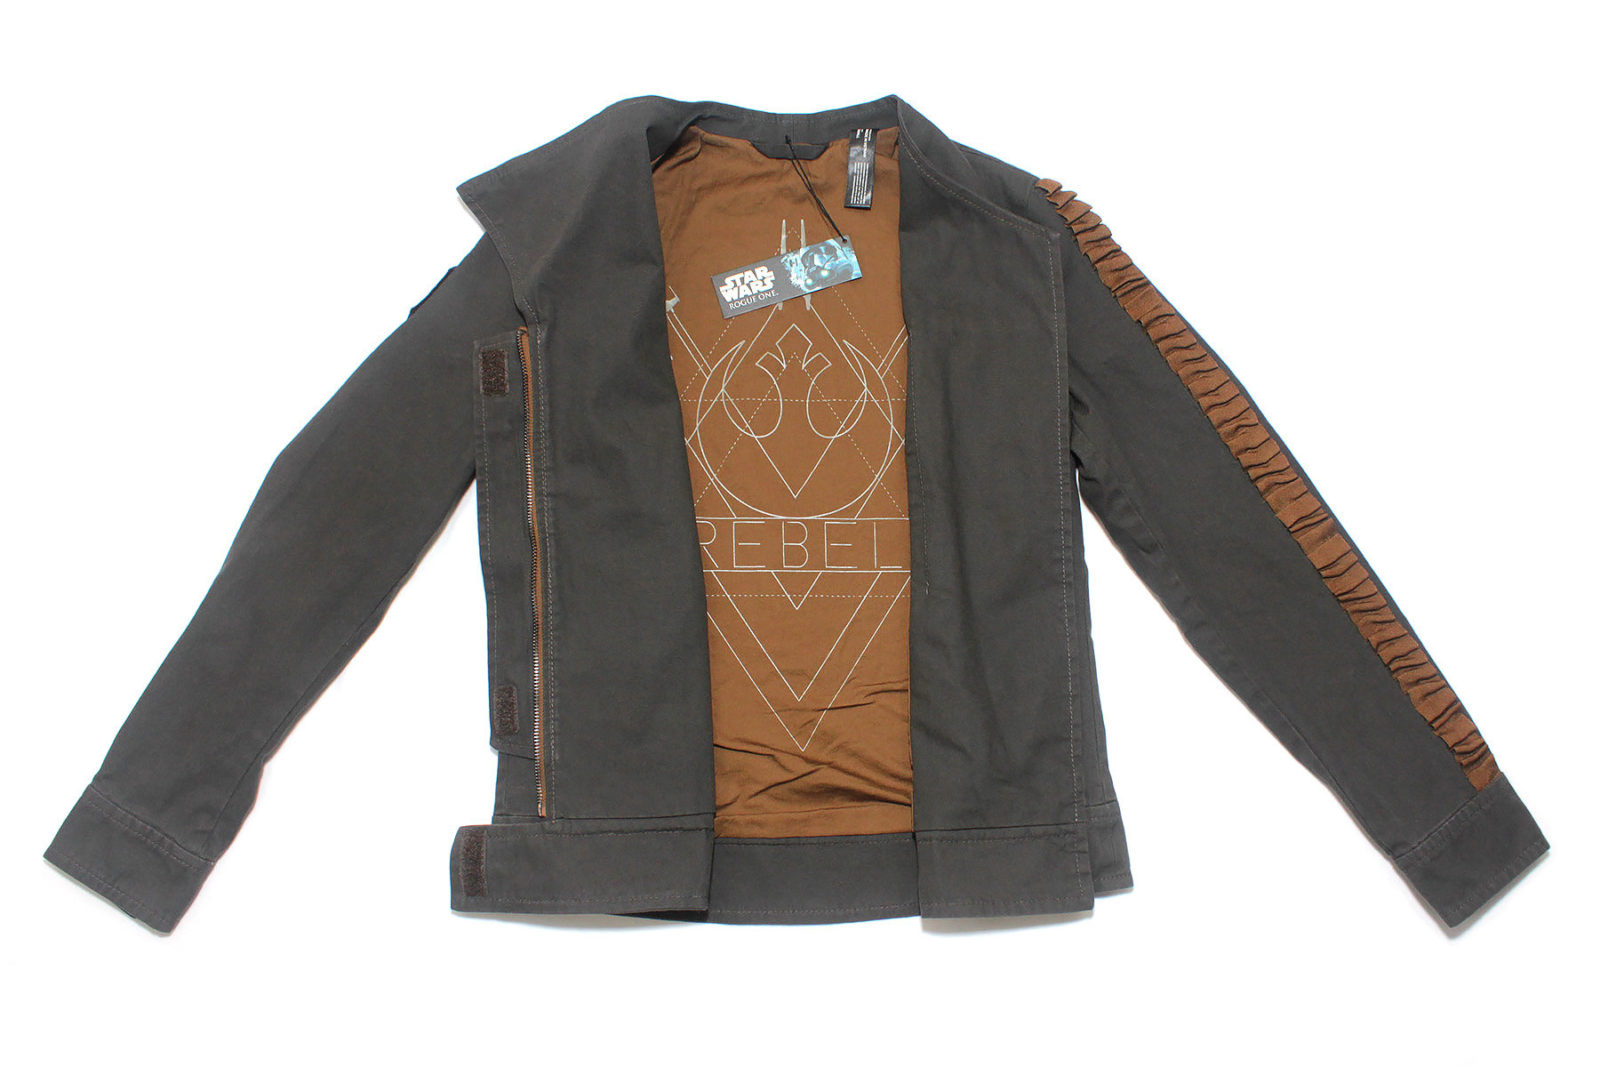 Review – Musterbrand Jyn Erso jacket